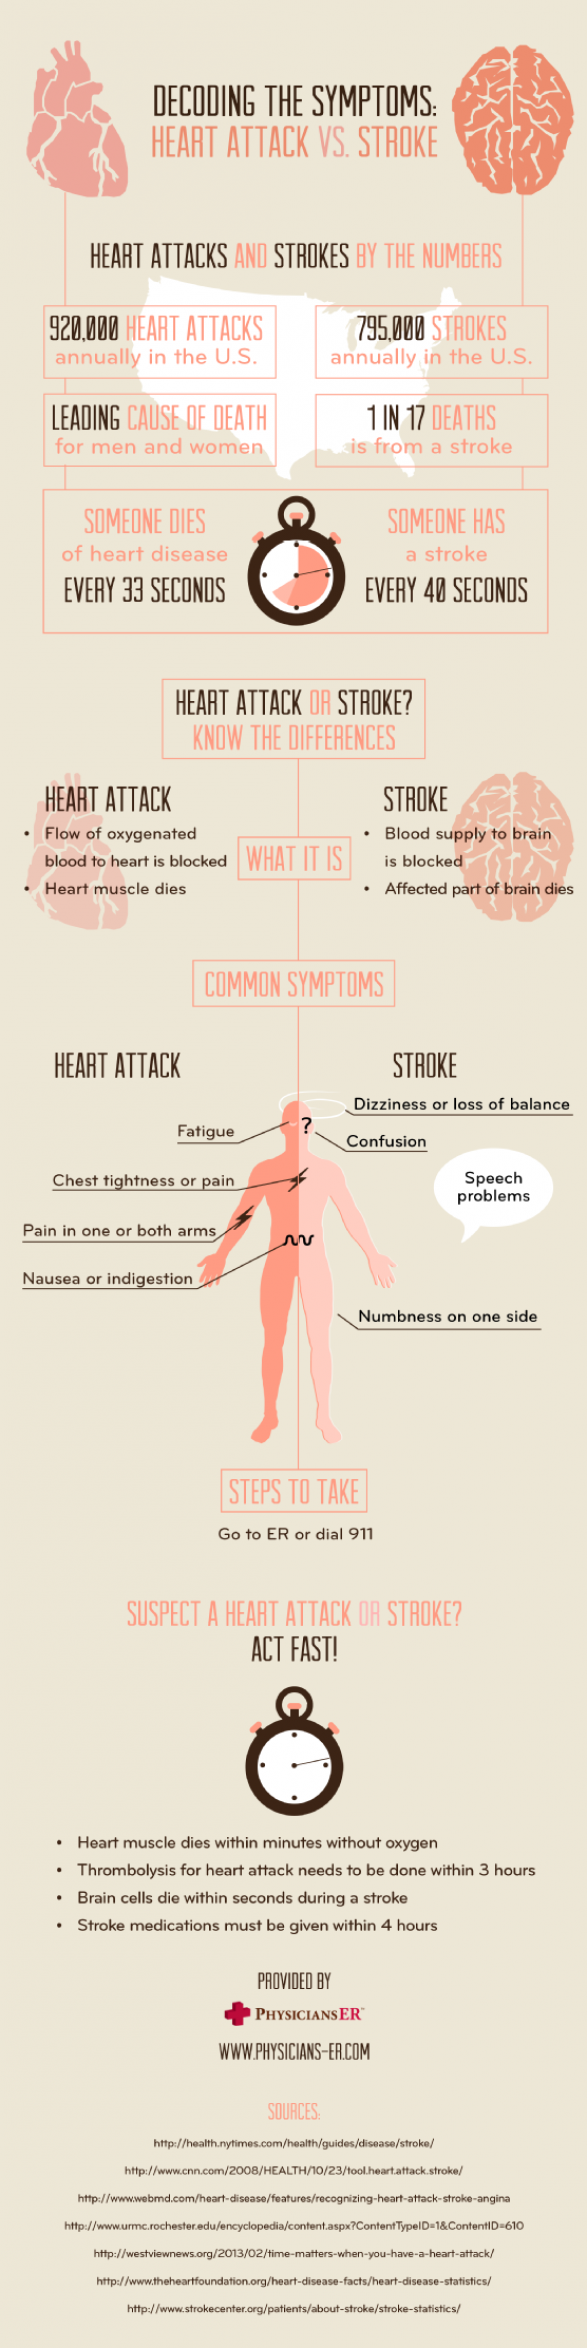 Decoding the Symptoms: Heart Attack vs. Stroke